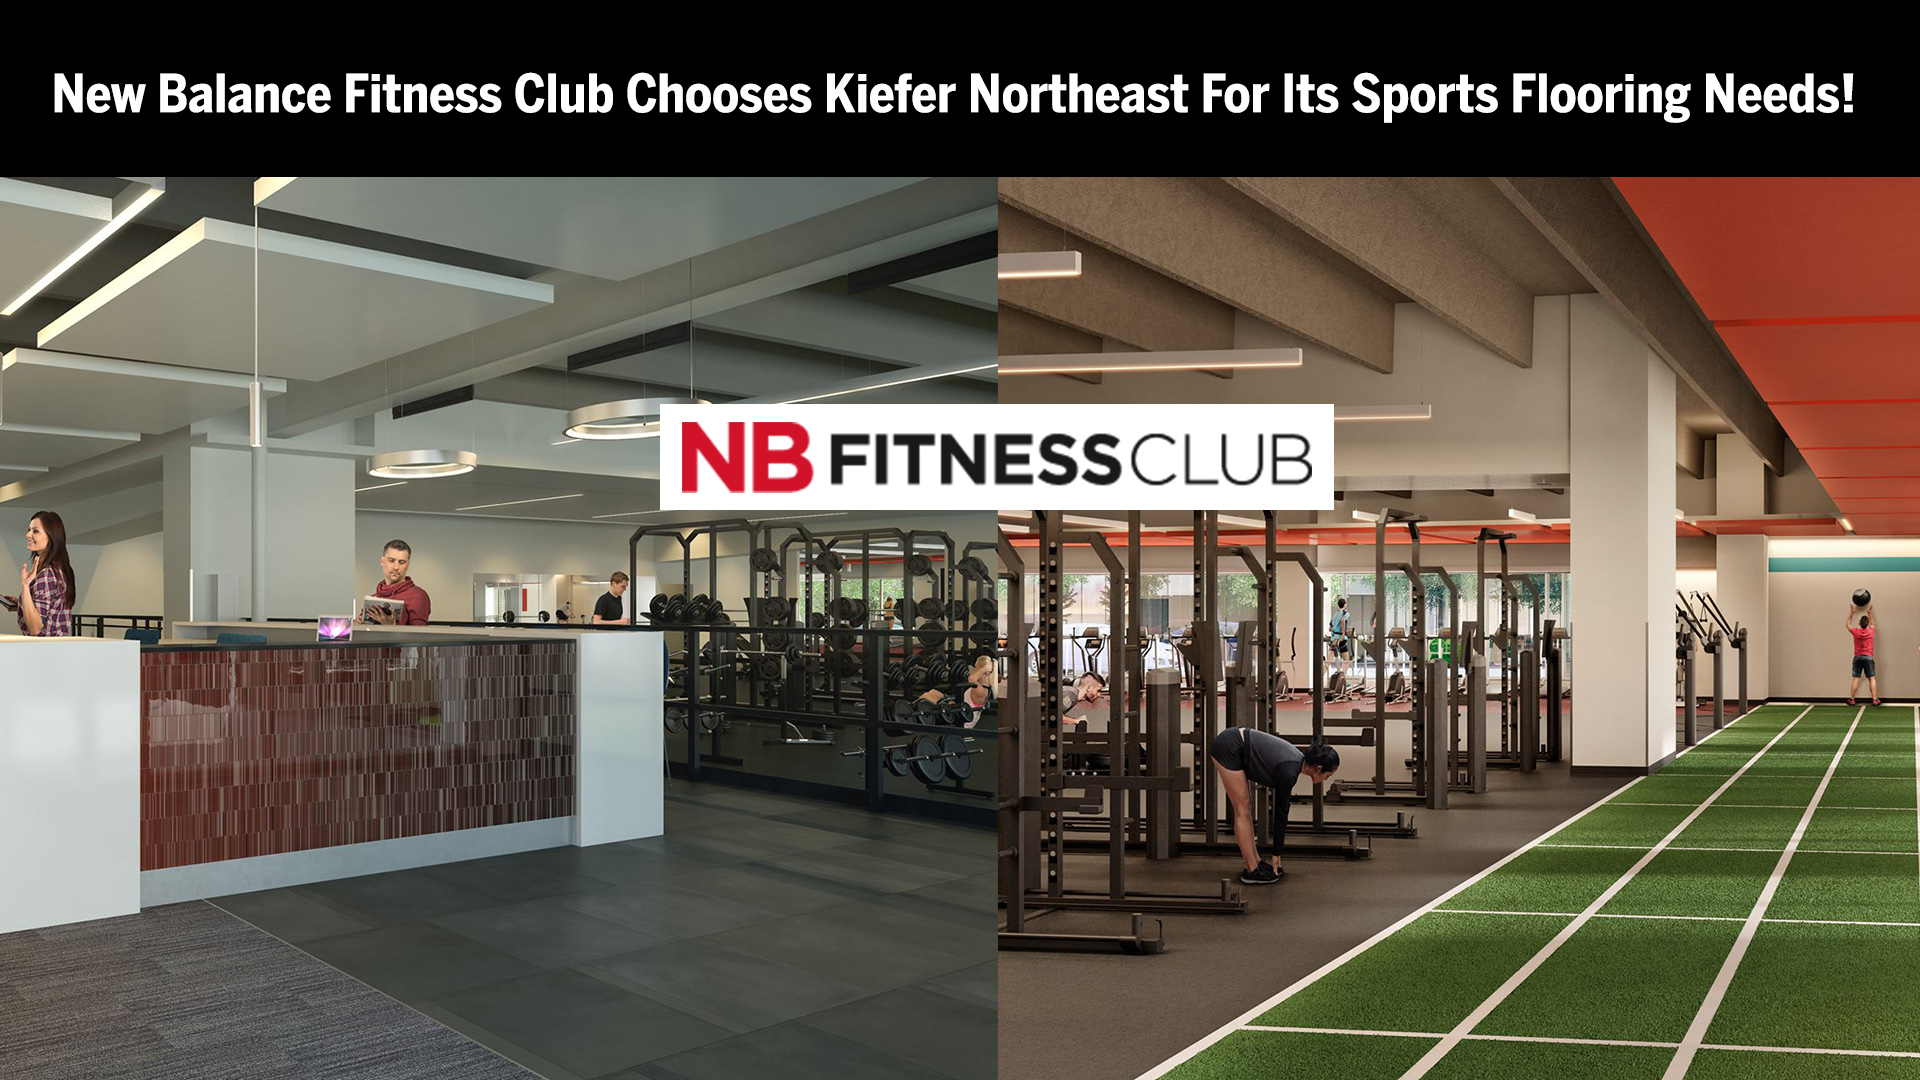 KieferNE_New-Balance-Fitness-Club_banner